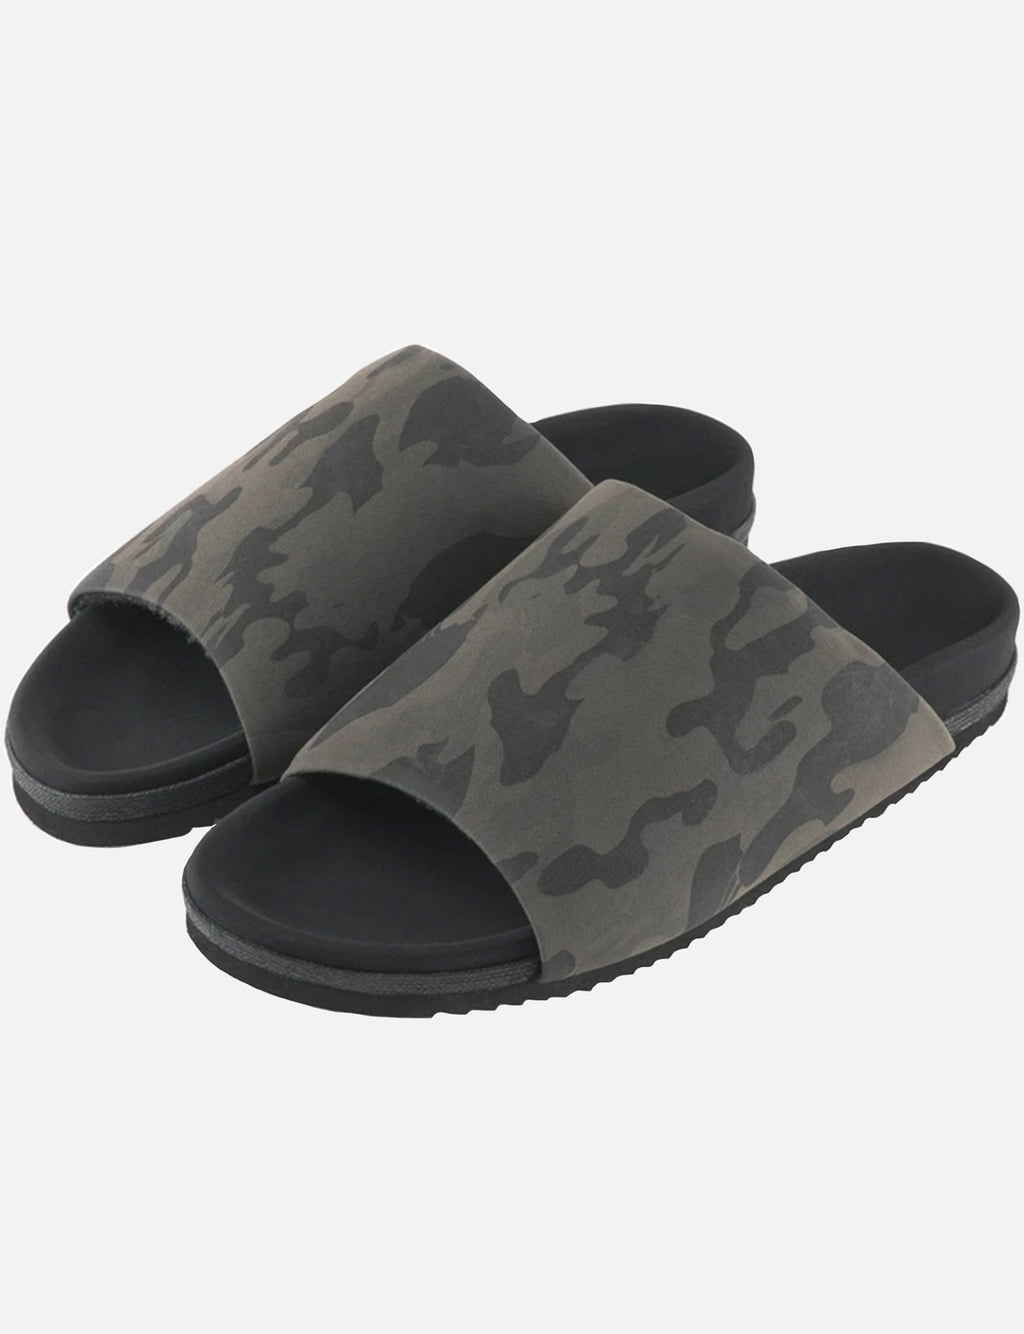 Roam Neoprene Slider in Dark Camo